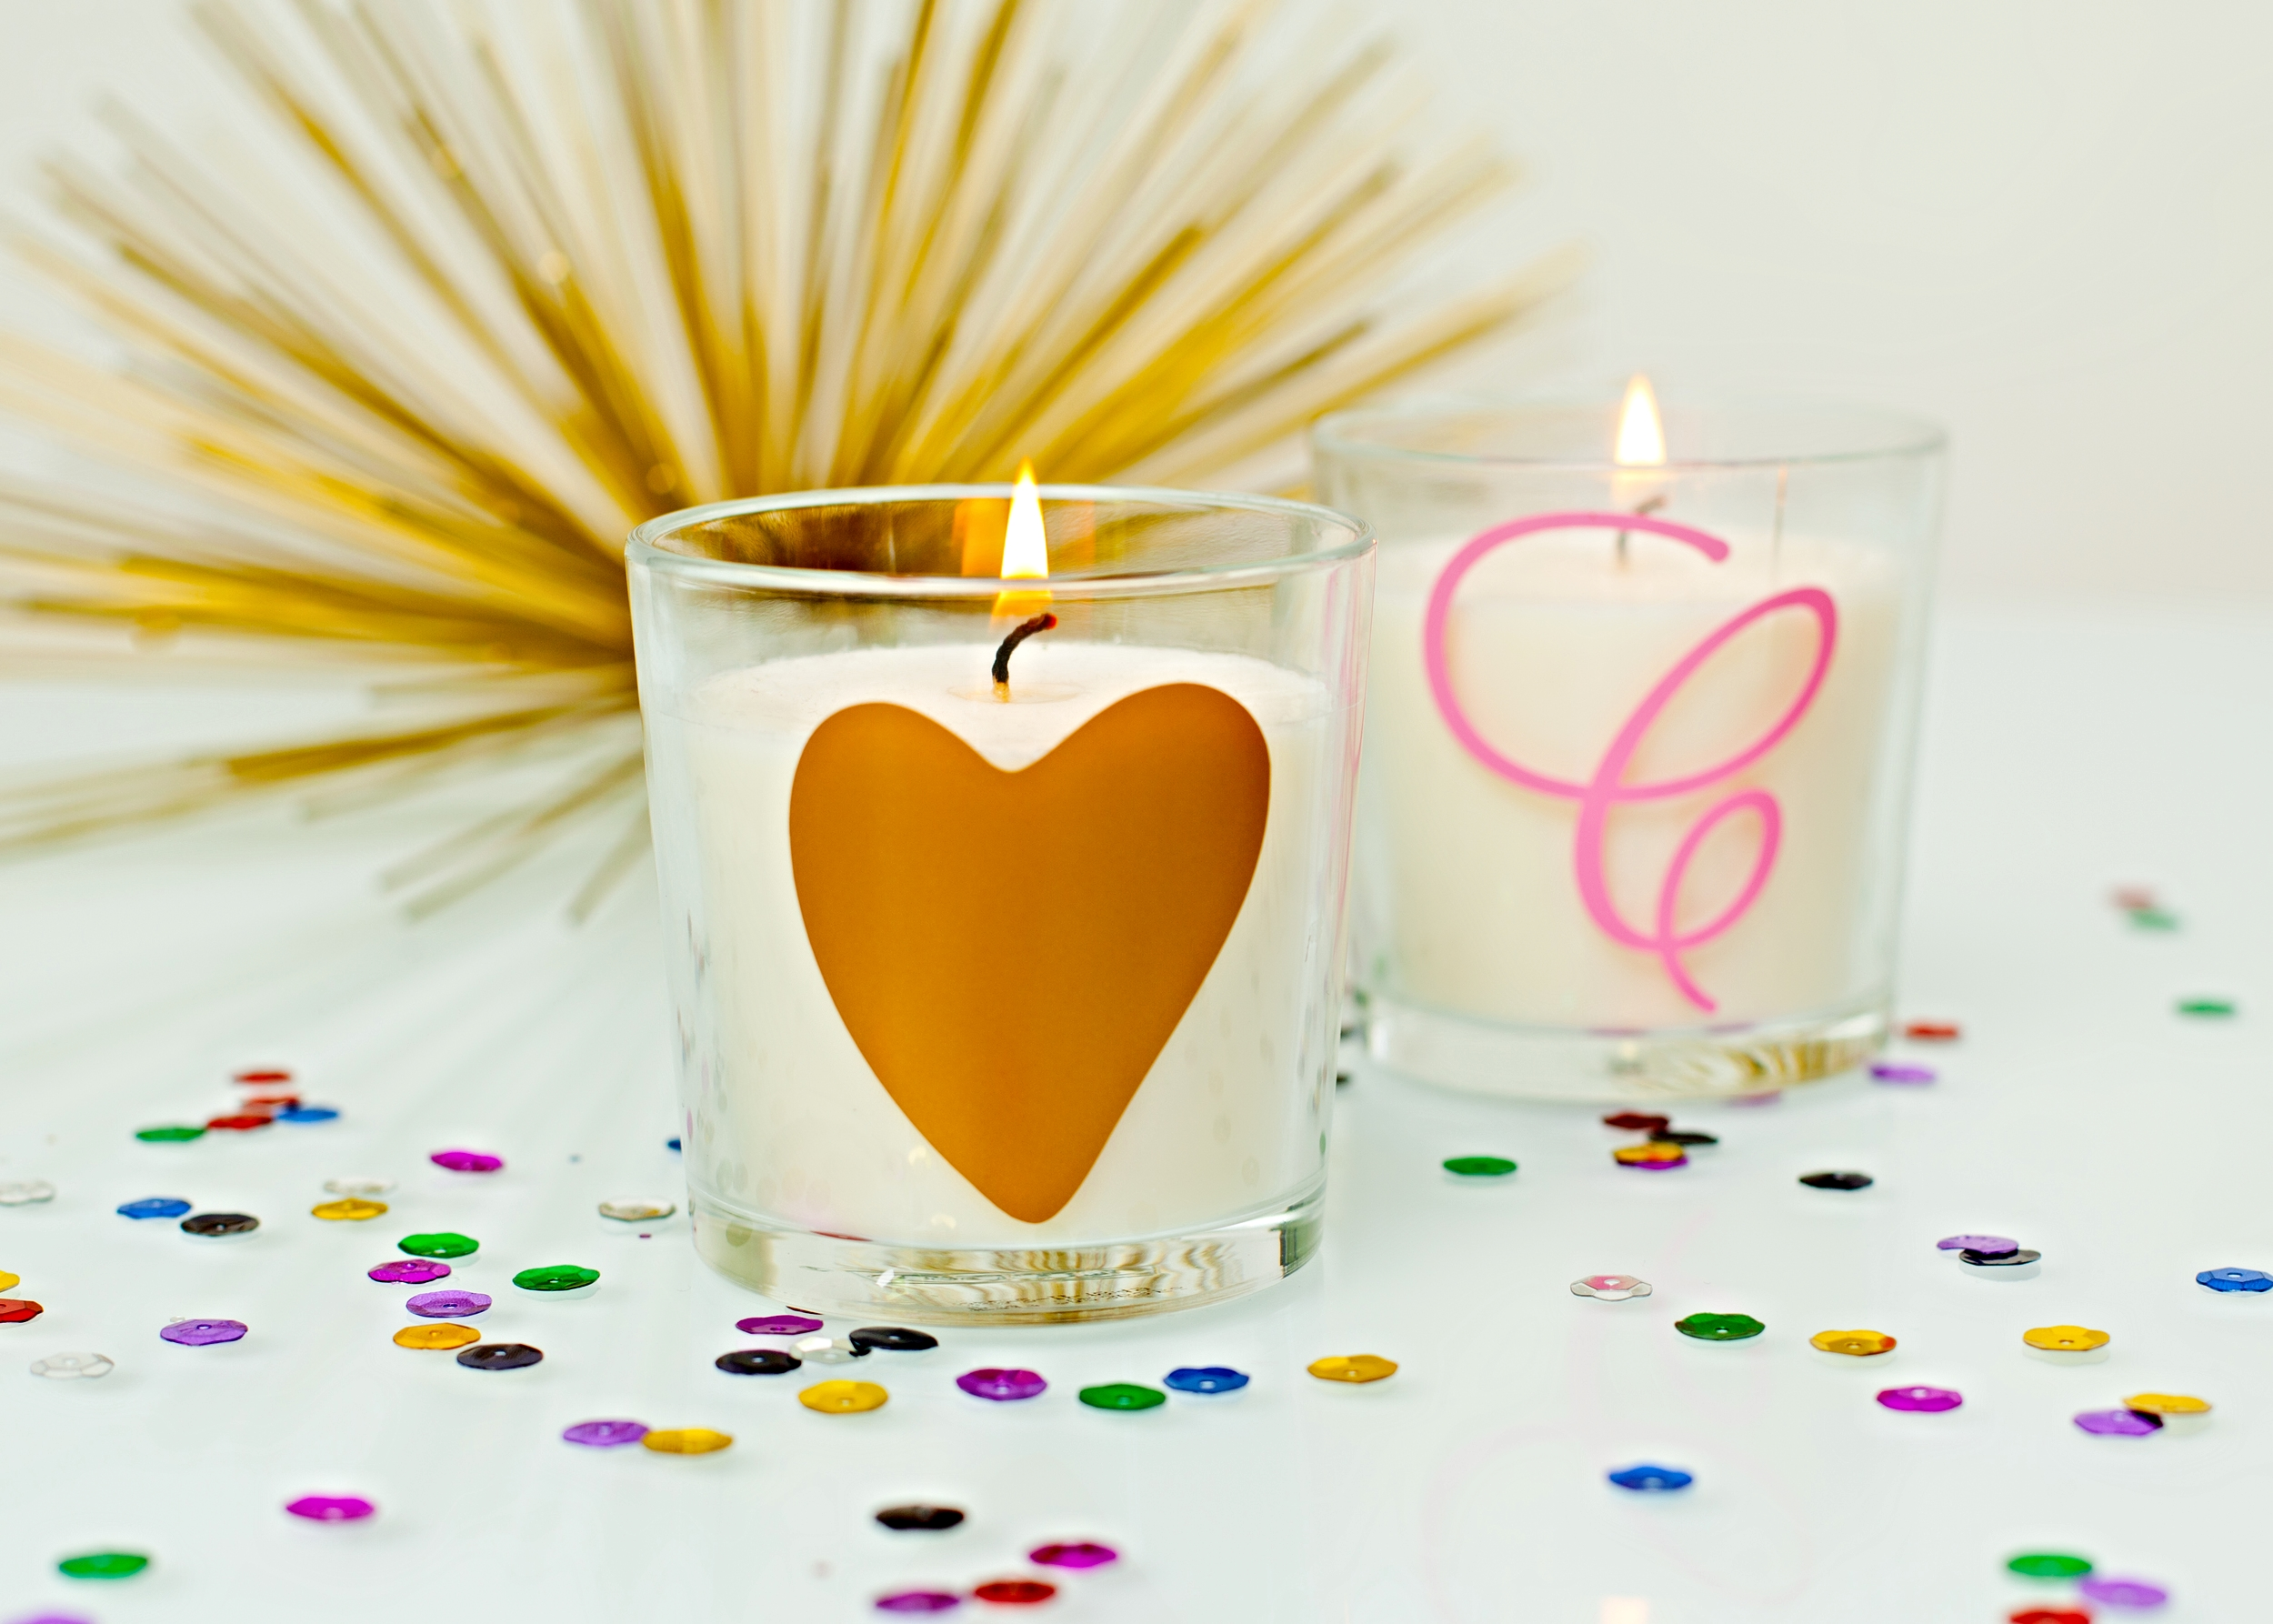 Personalized candles @www.thedetaileddiva.com.jpg